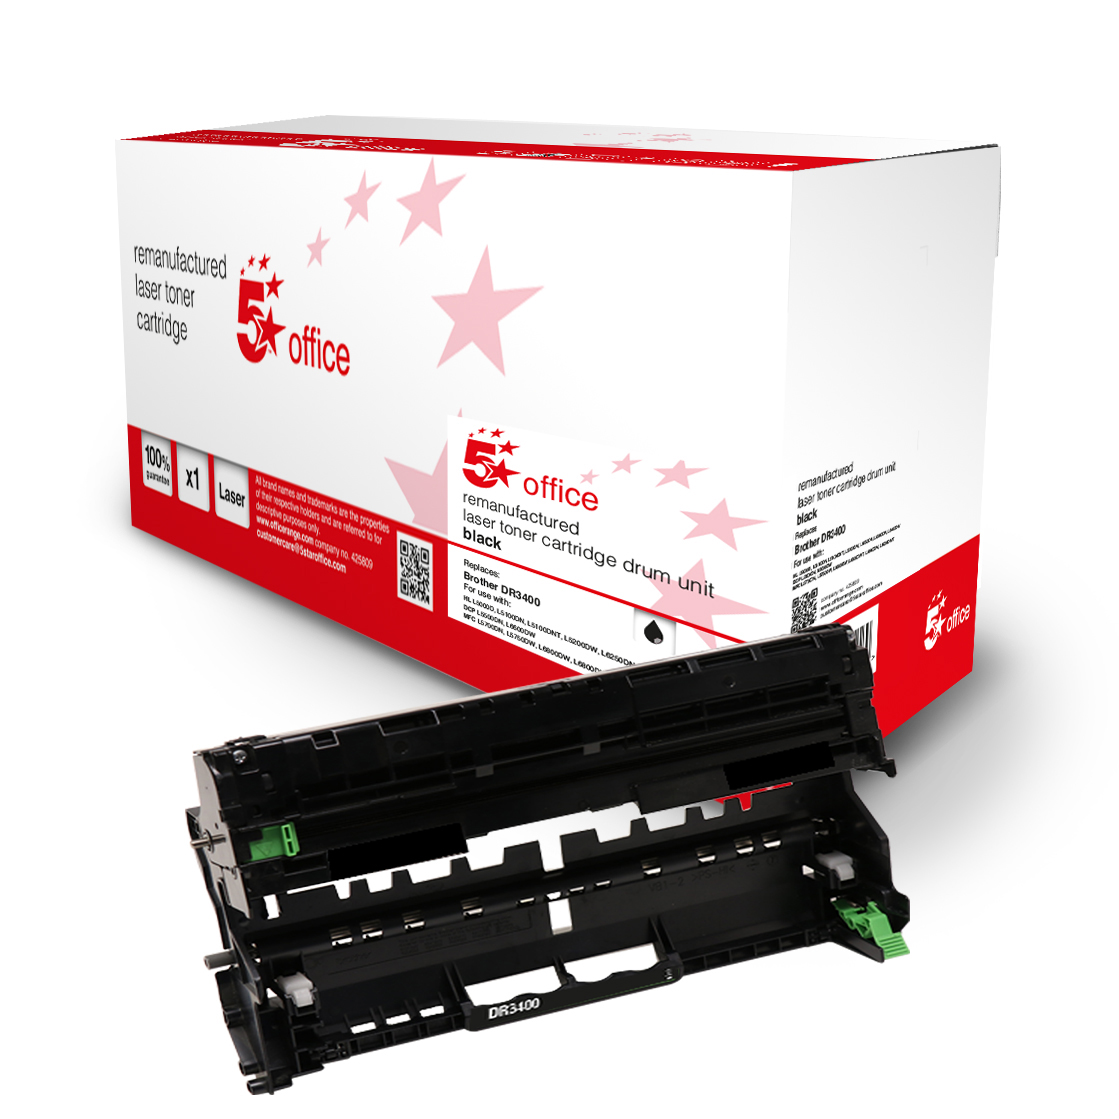 5 Star Office Remanufactured Laser Drum Page Life Black 50000pp Brother DR3400 Alternative